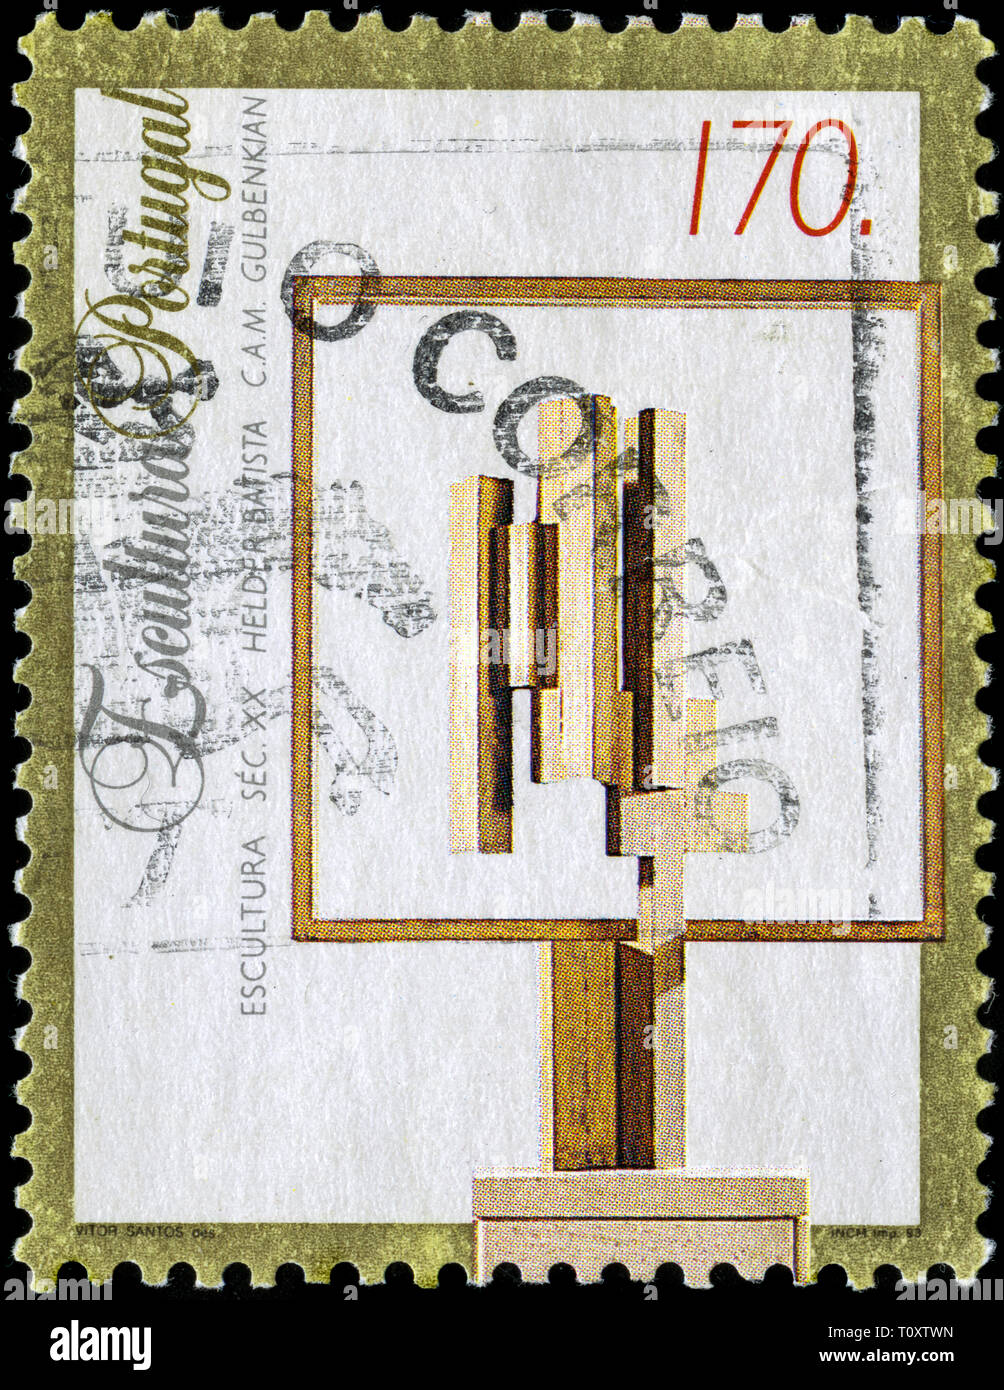 Postage stamp from Portugal in the Sculptures series issued in 1993 - Stock Image